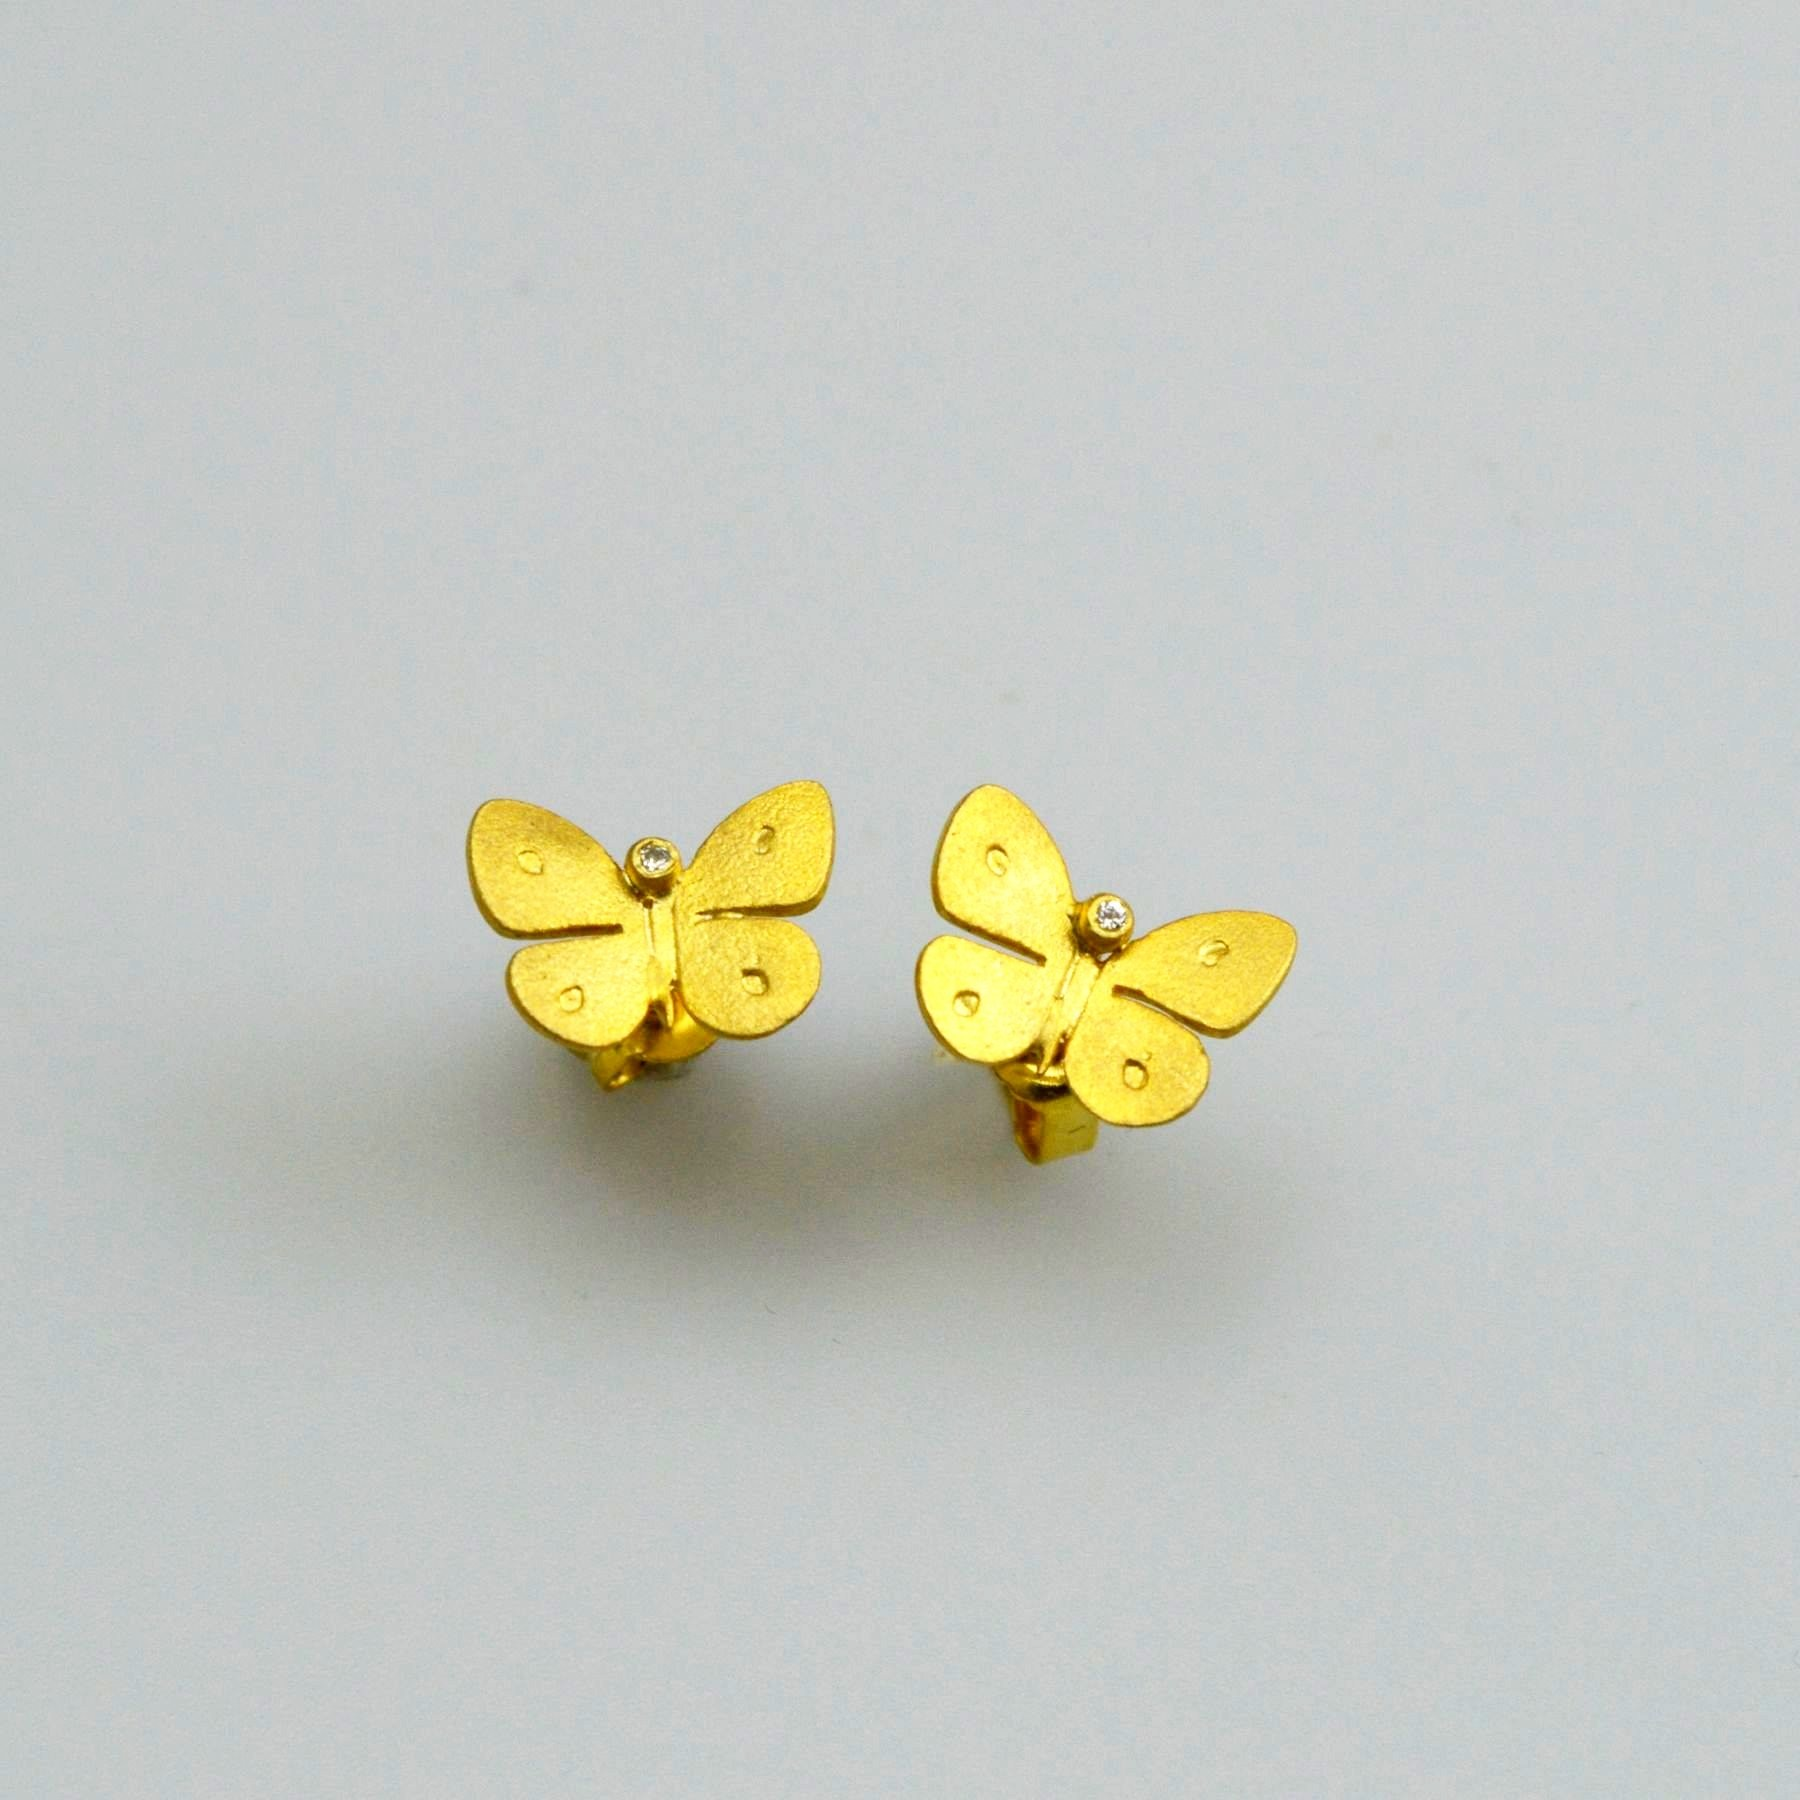 Gold earring 14K or 18K with synthetic stones or diamonds brilliant cut